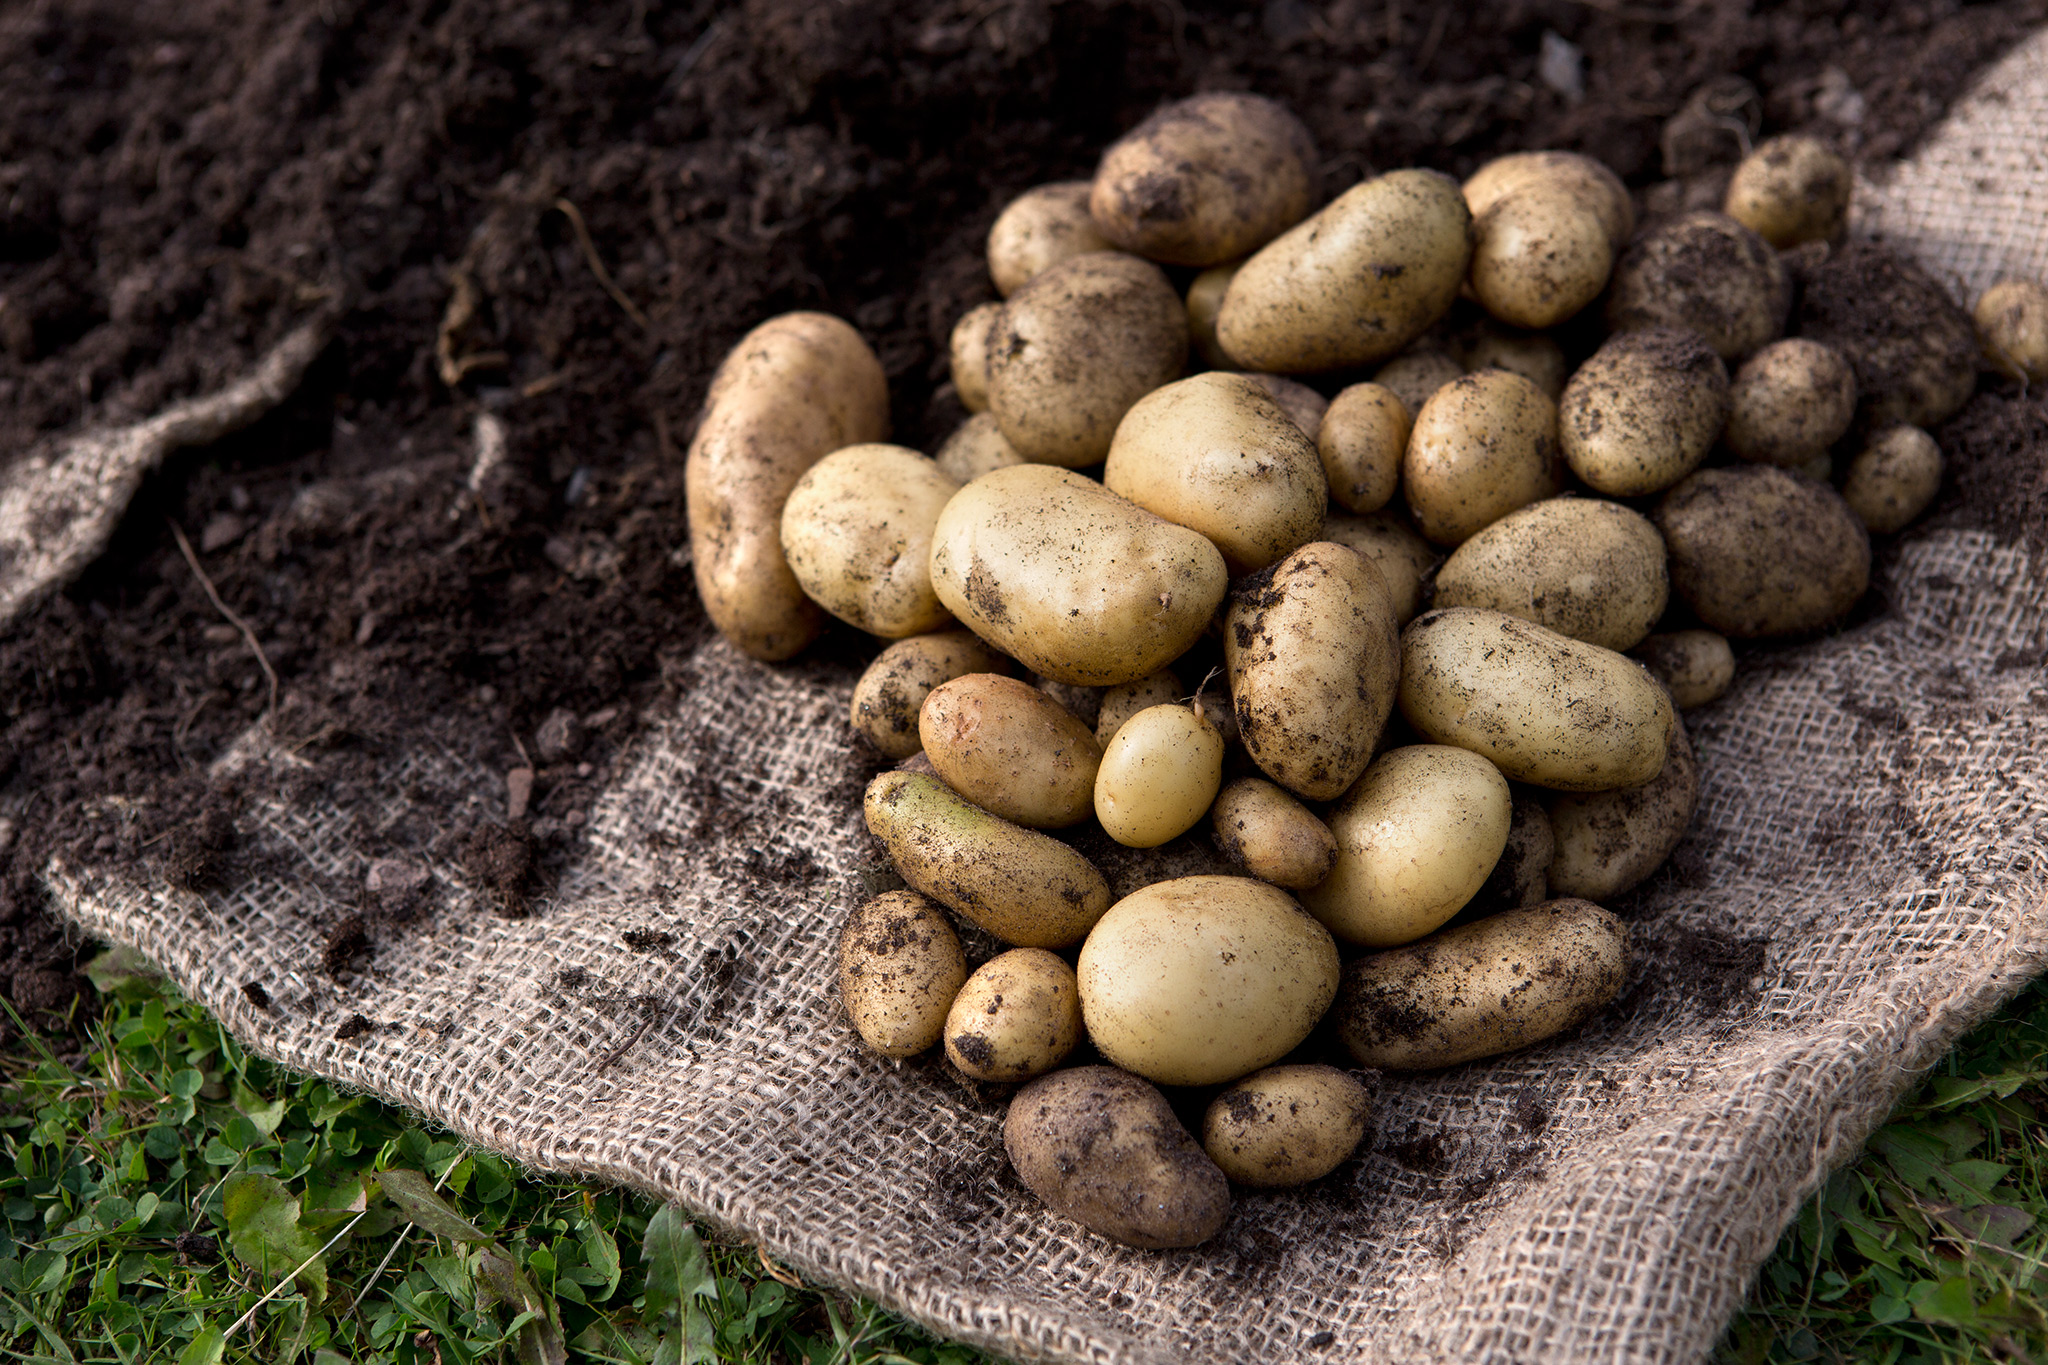 Allotment jobs in September - harvesting maincrop potatoes